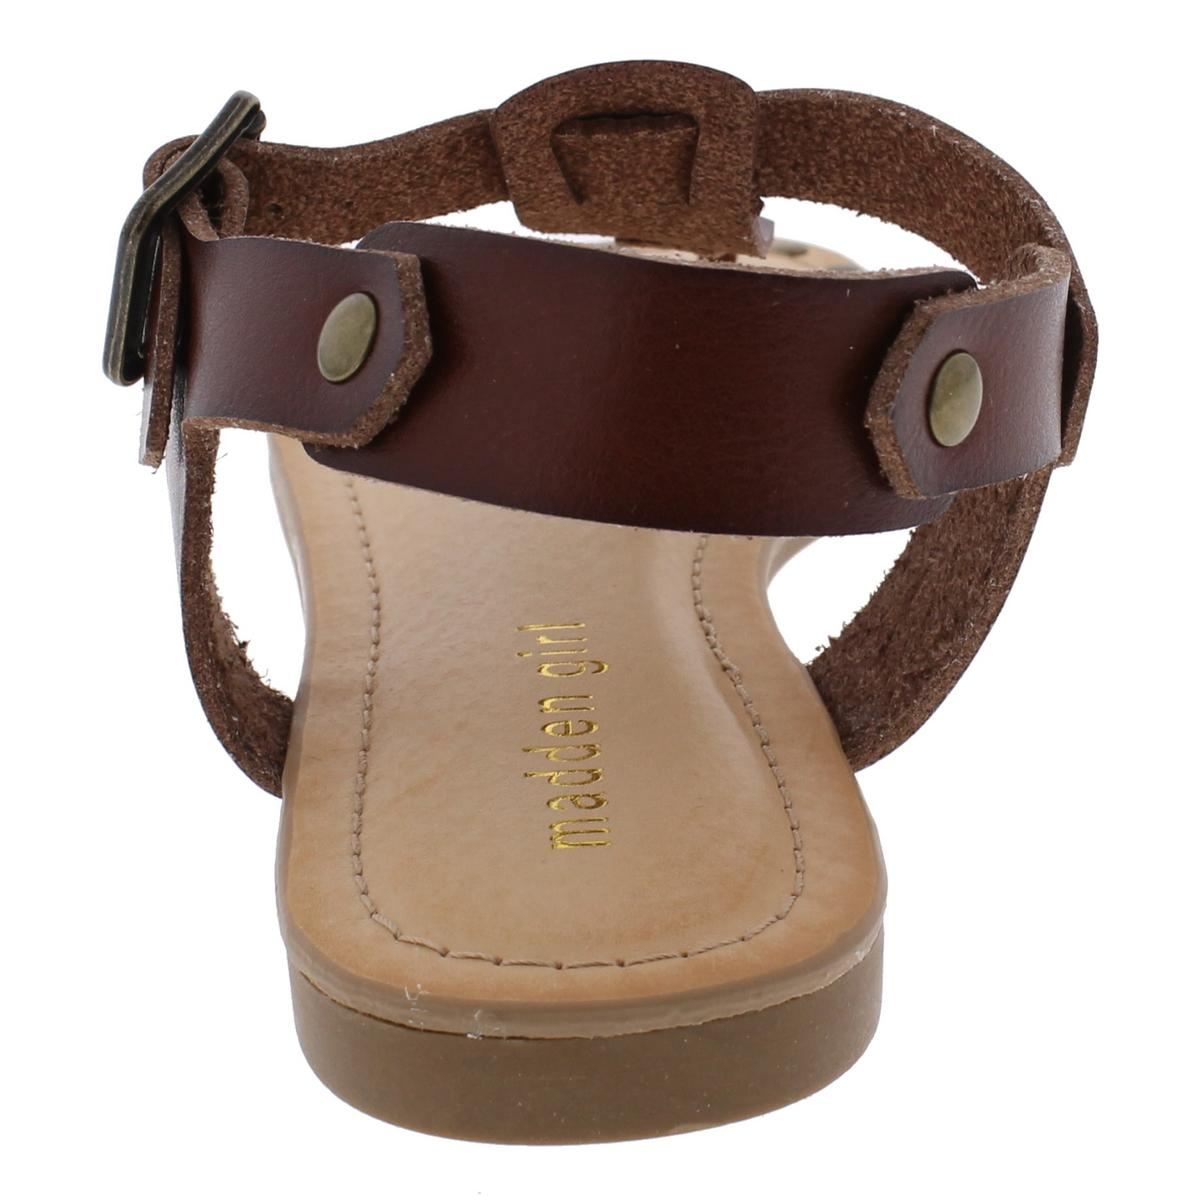 Madden-Girl-by-Steve-Madden-Womens-Mona-Studded-T-Strap-Sandals-Shoes-BHFO-9554 thumbnail 6